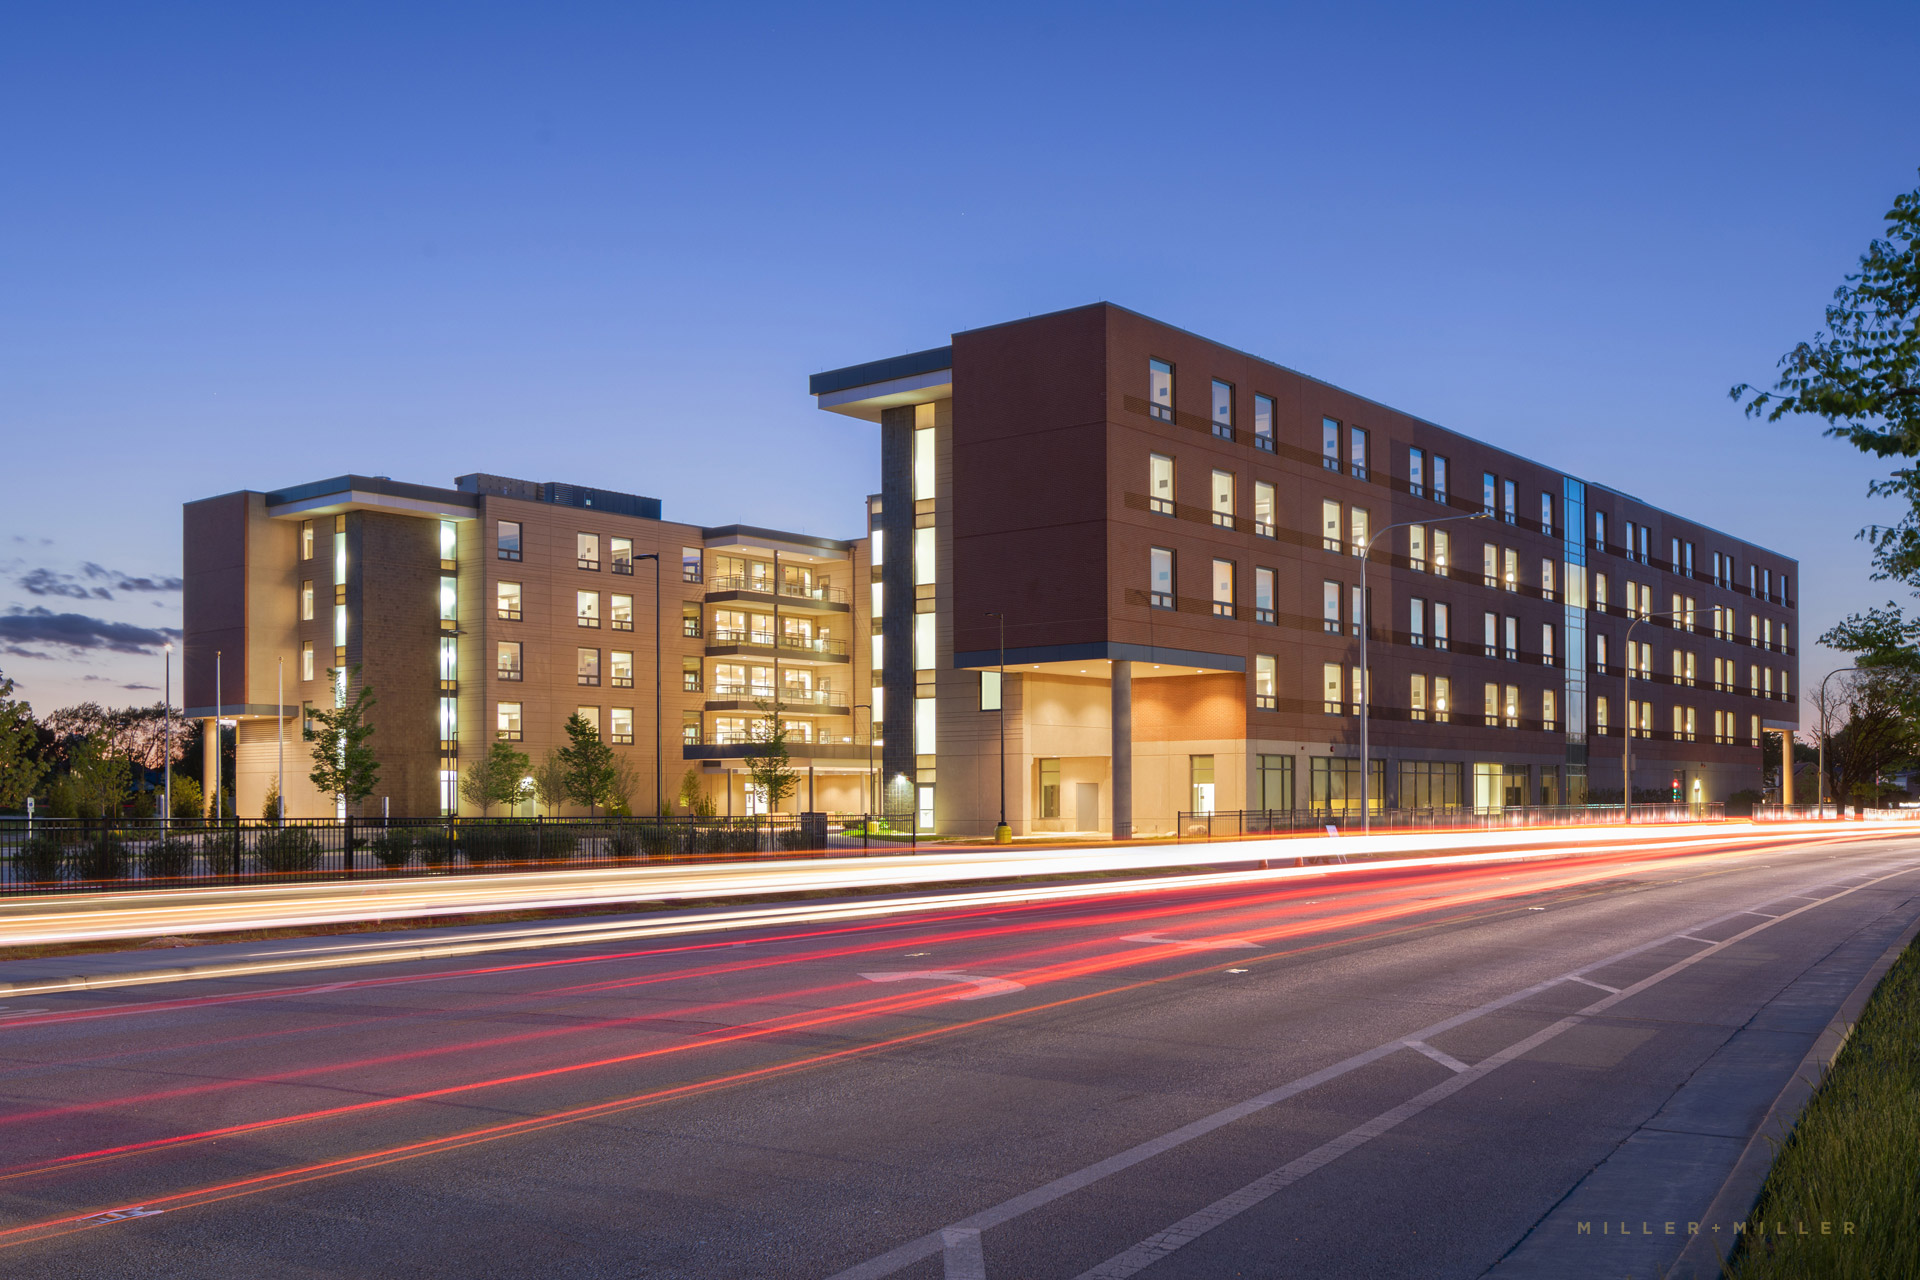 Chicago architectural photographer veterans medical facility building